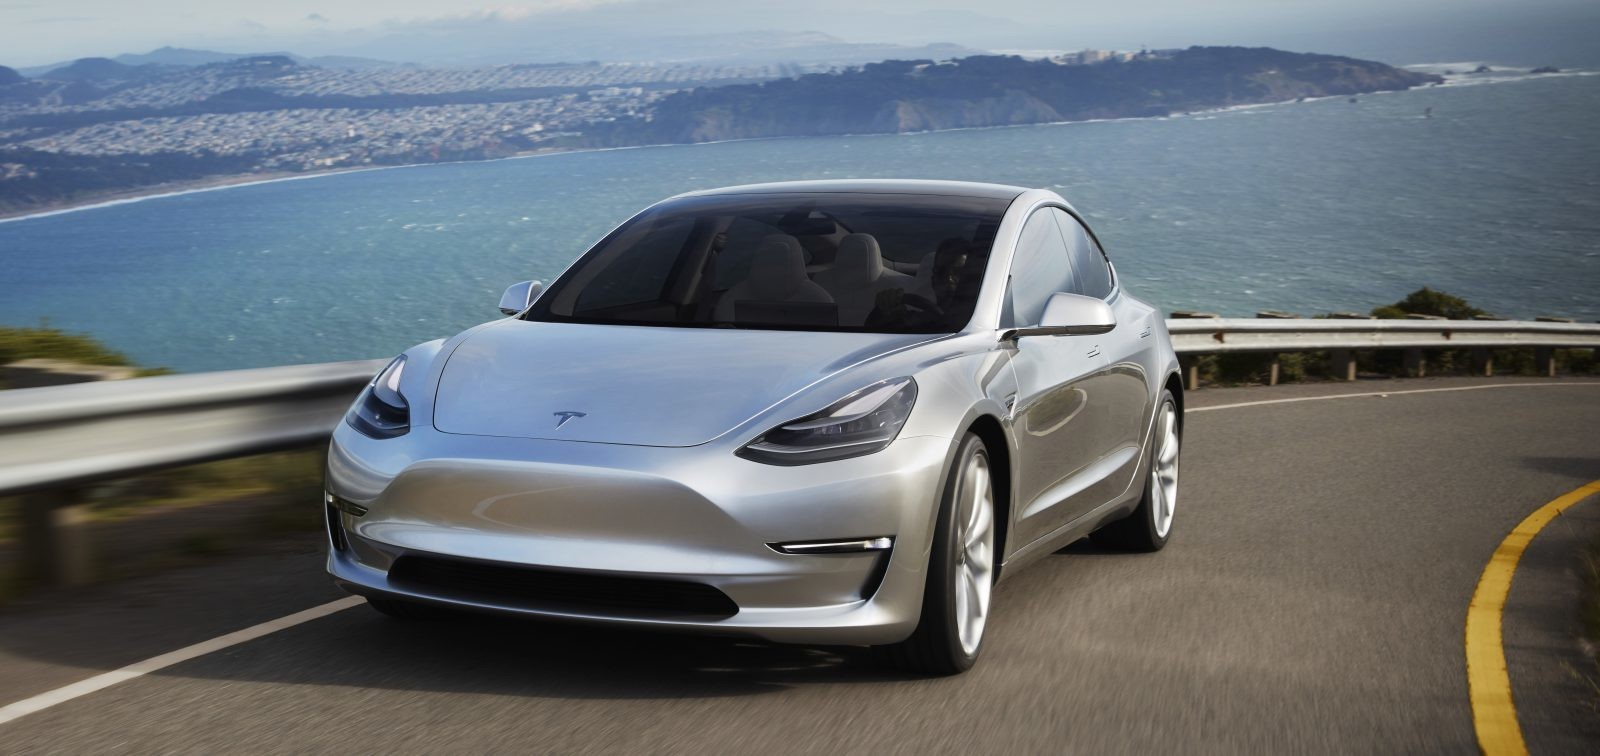 A ride in a self-driving Tesla Model 3 on 'Tesla Network' could end up costing only ~$0.60 per mile